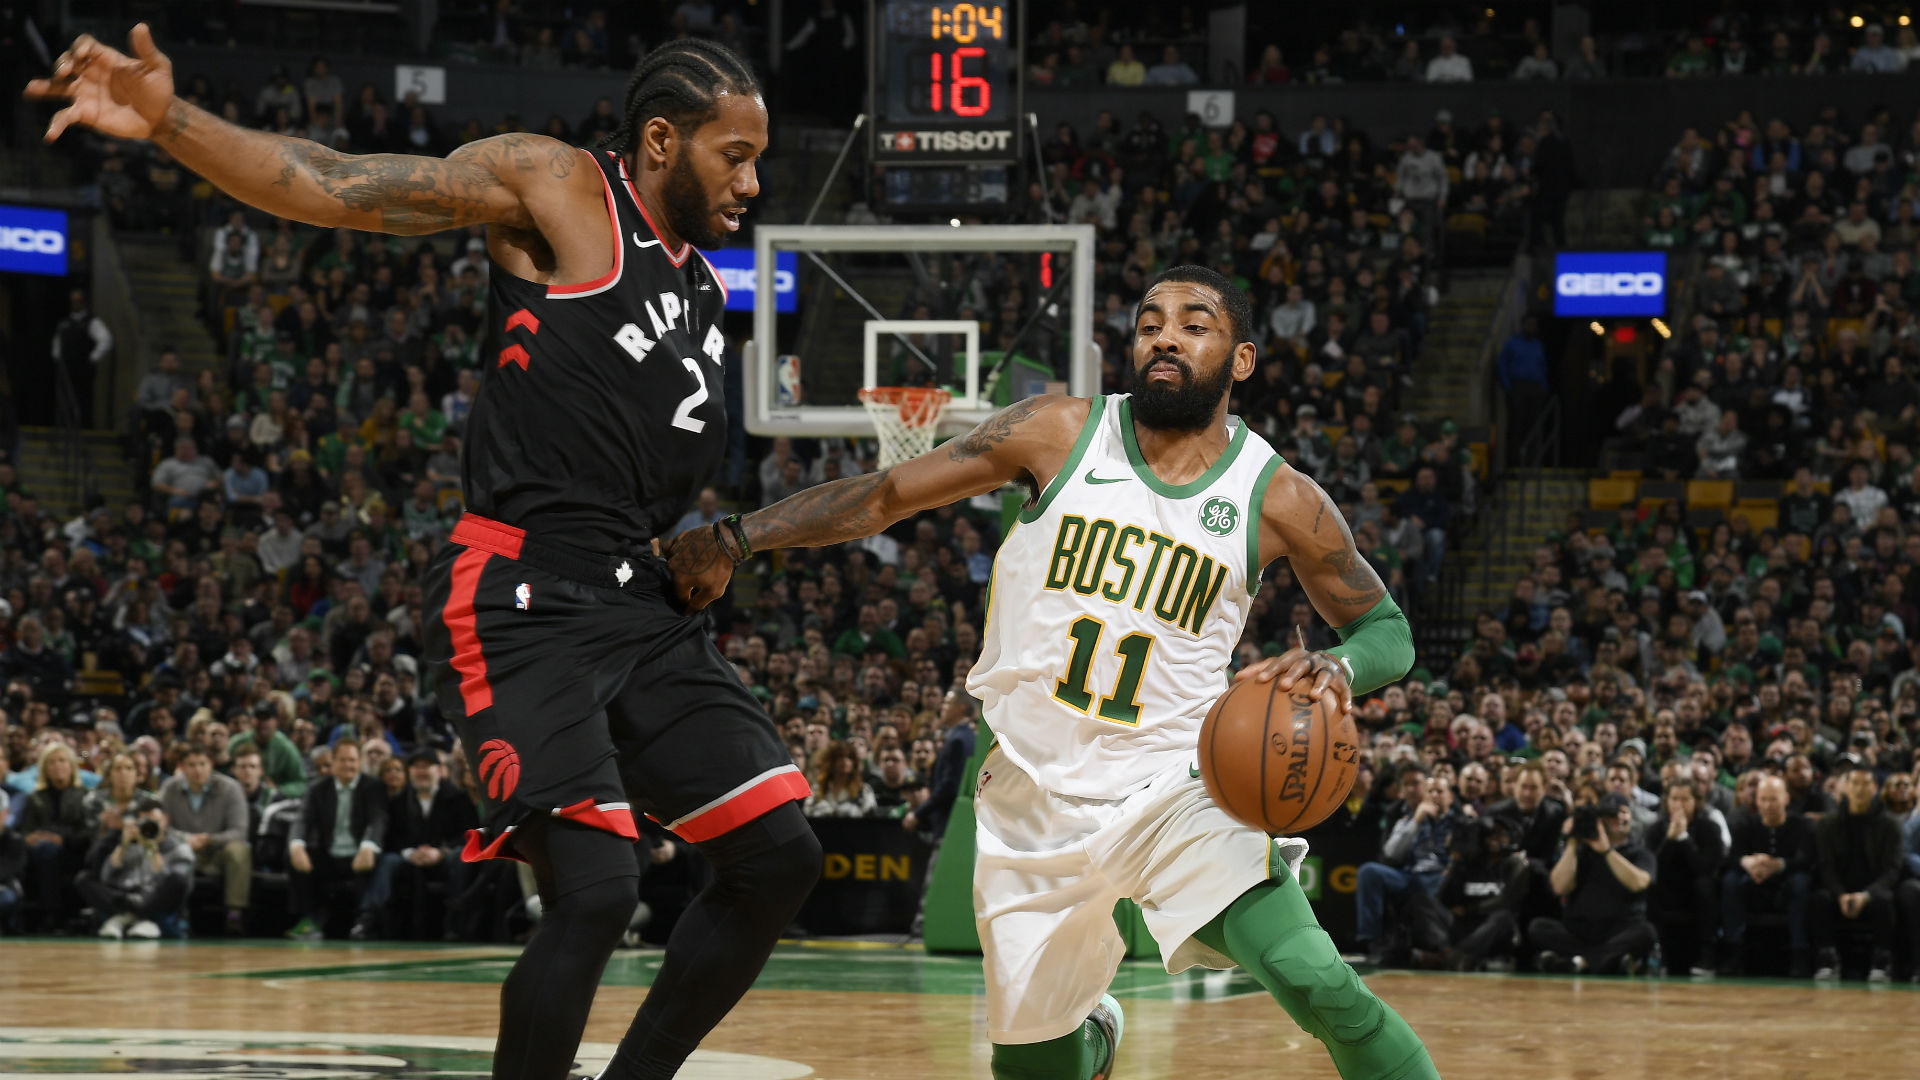 Raptors show no mercy in win against rival Celtics